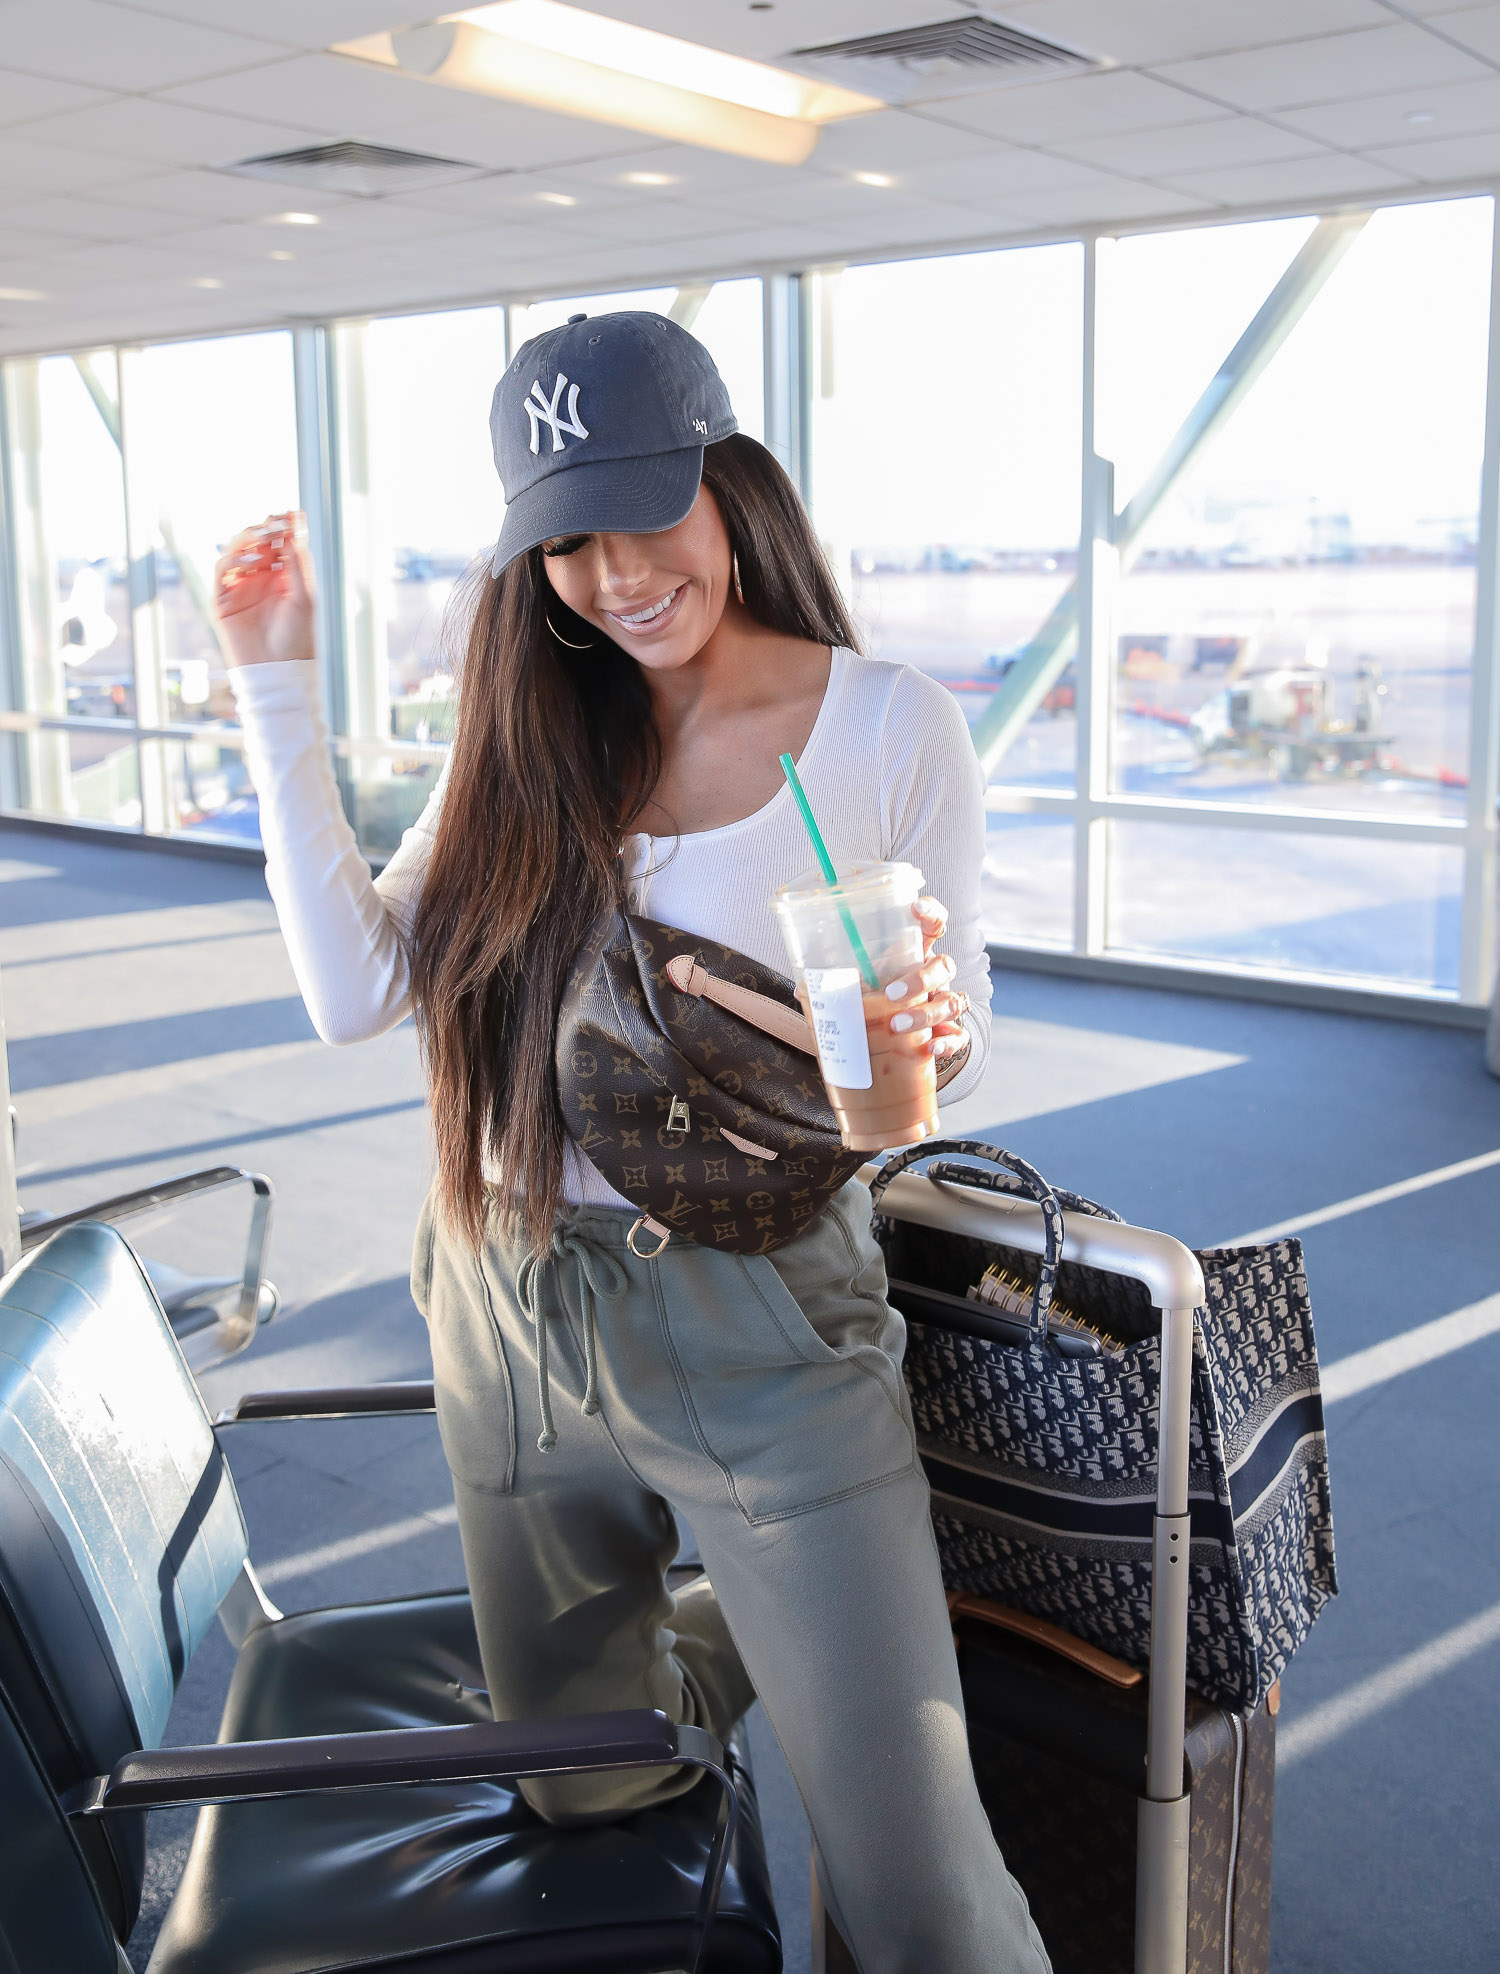 airport outfit idea, cute airport fashion outfit, dior sneakers womens 2020, pinterest airport fashion, horizon louis vuitton carryon, dior oblique tote, emily gemma-2 | Airport Style by popular US life and style blog, The Sweetest Thing: image of a woman in an airport wearing a Abercrombie Long-Sleeve Cozy Henley, Abercrombie High Rise Joggers, Dior WALK'N'DIOR SNEAKER IN OBLIQUE EMBROIDERED CANVAS, Nordstrom 21-Inch Rolling Spinner Suitcase, Nordstrom Demonbreun Hoop Earrings UNCOMMON JAMES BY KRISTIN CAVALLARI, Nordstrom Lip Cheat Lip Liner CHARLOTTE TILBURY, Nordstrom Hot Lips Lipstick CHARLOTTE TILBURY, Nordstrom Gloss Luxe Moisturizing Lipgloss TOM FORD, and Urban Outfitters MLB Baseball Hat.